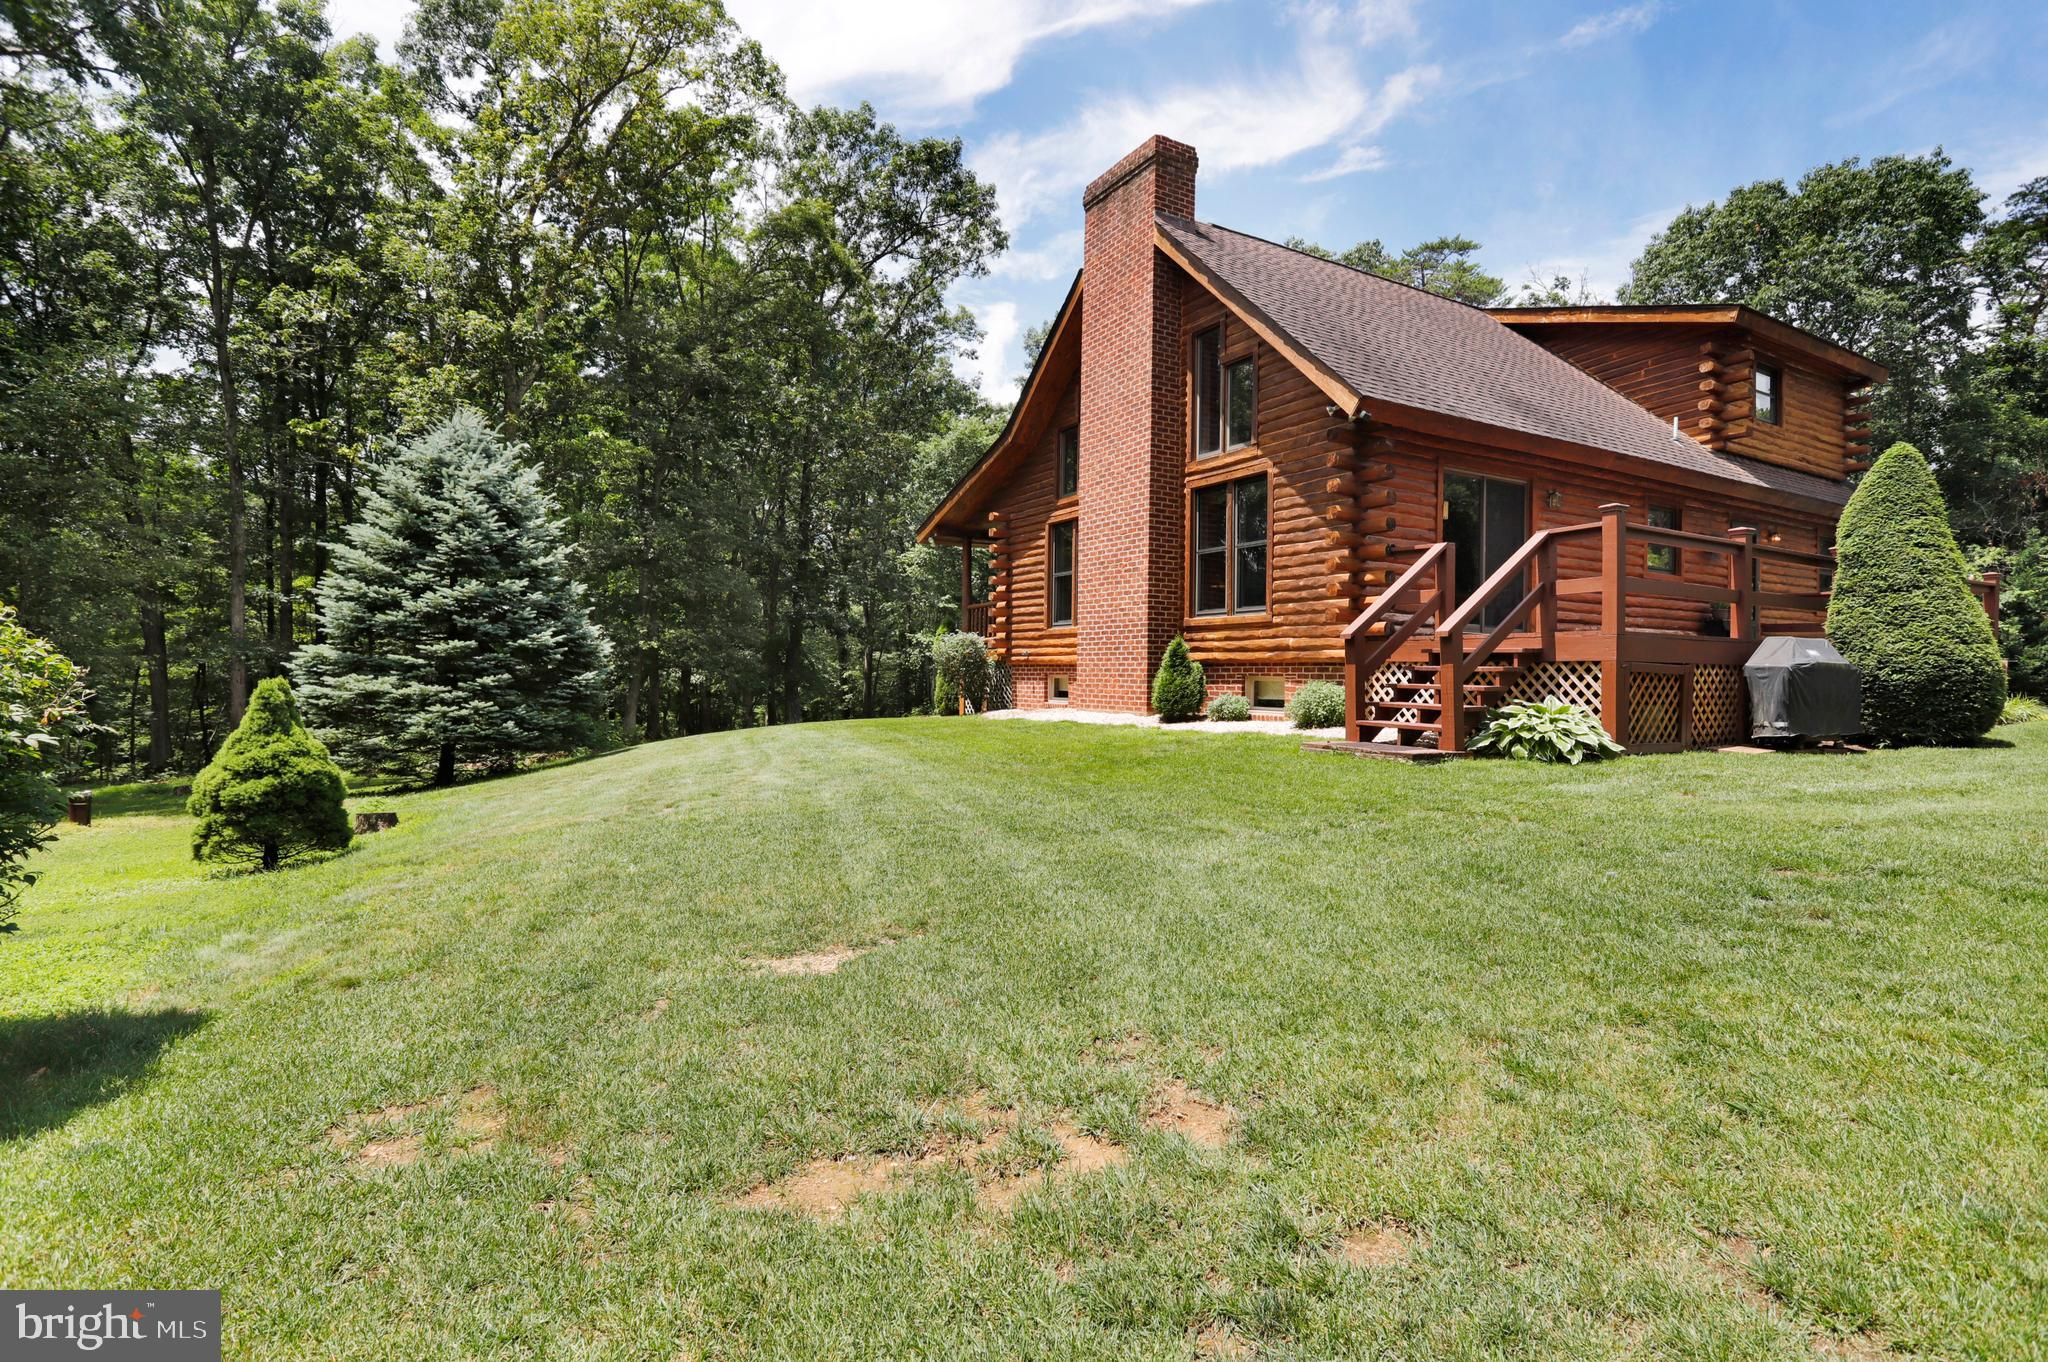 11133 GARRISON HOLLOW ROAD, CLEAR SPRING, MD 21722